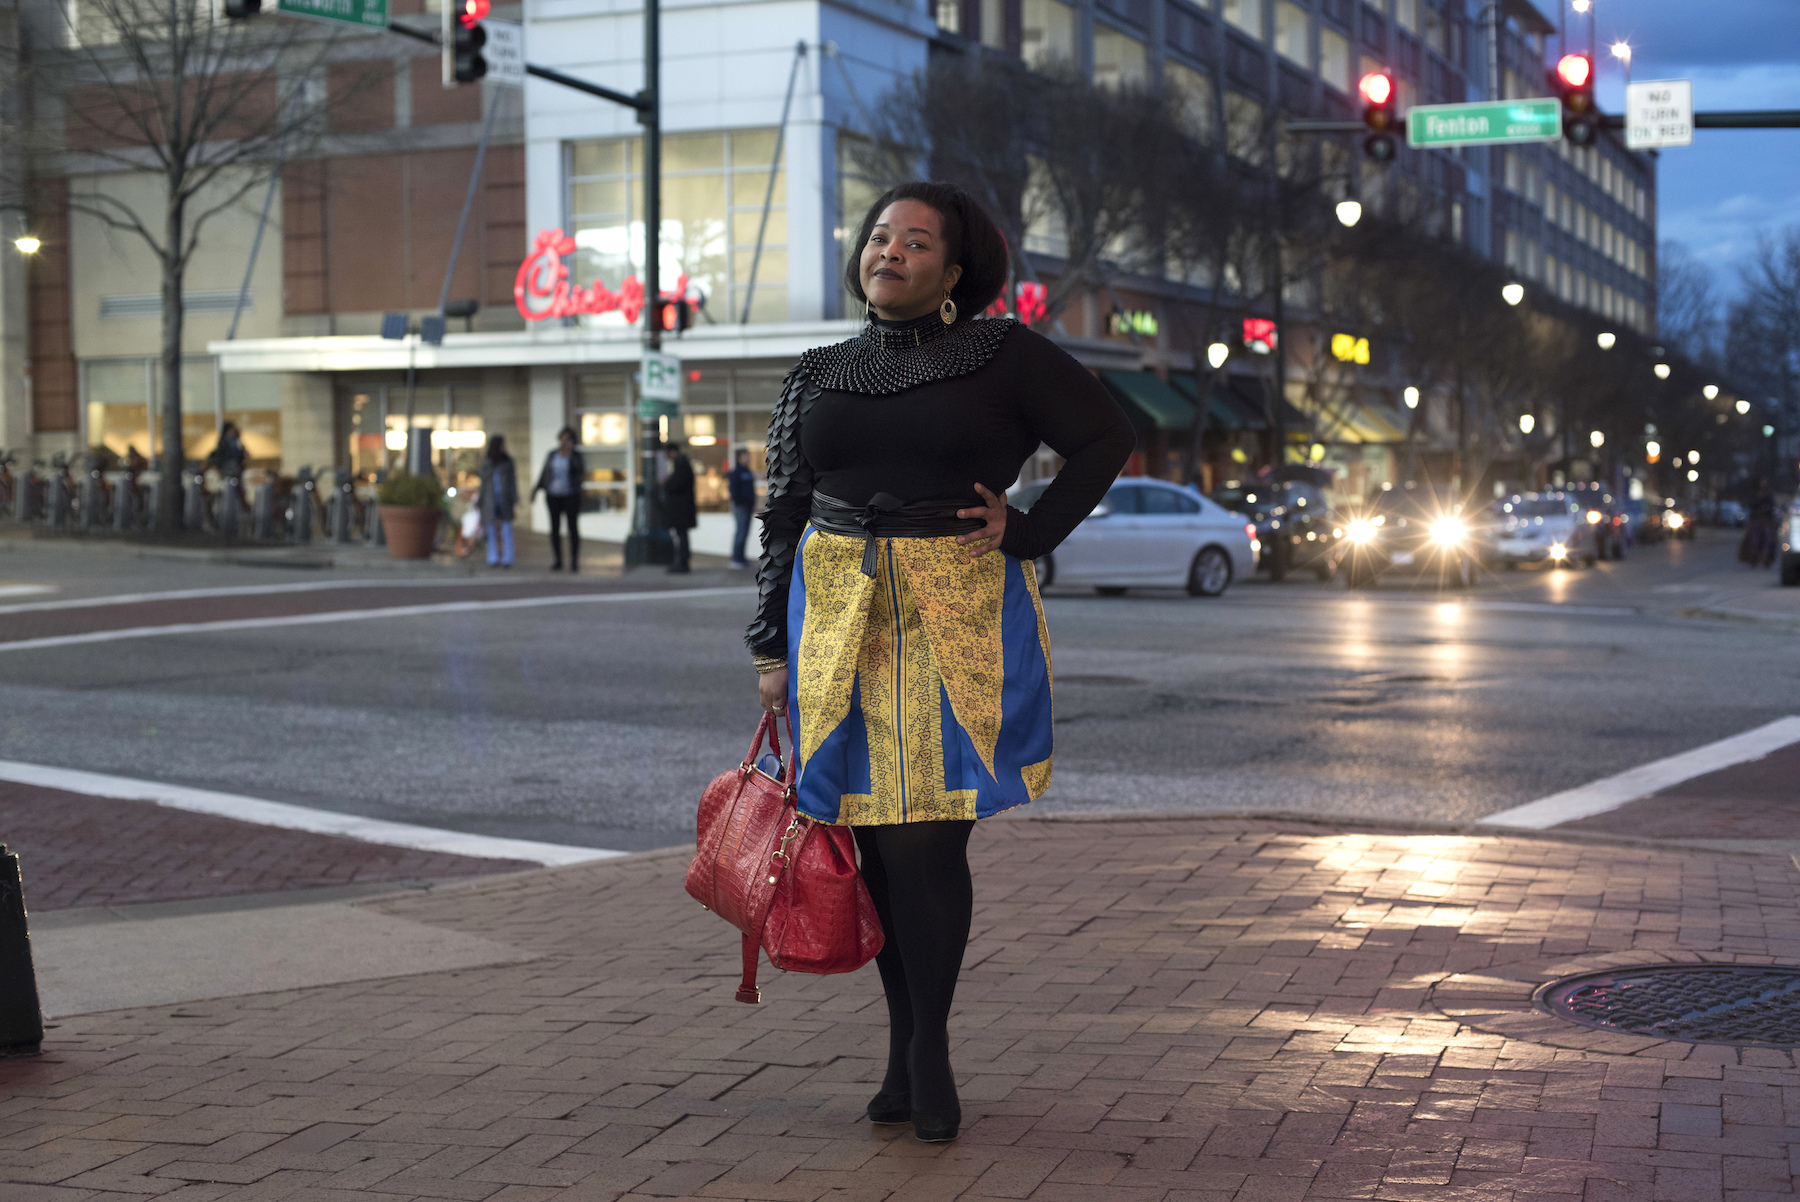 <div class='meta'><div class='origin-logo' data-origin='AP'></div><span class='caption-text' data-credit='AP Photo/Sait Serkan Gurbuz'>Nicole Moore dressed in Wakanda-inspired attire poses for a portrait before seeing Black Panther in Silver Spring, Md., Thursday, Feb. 15, 2018.</span></div>